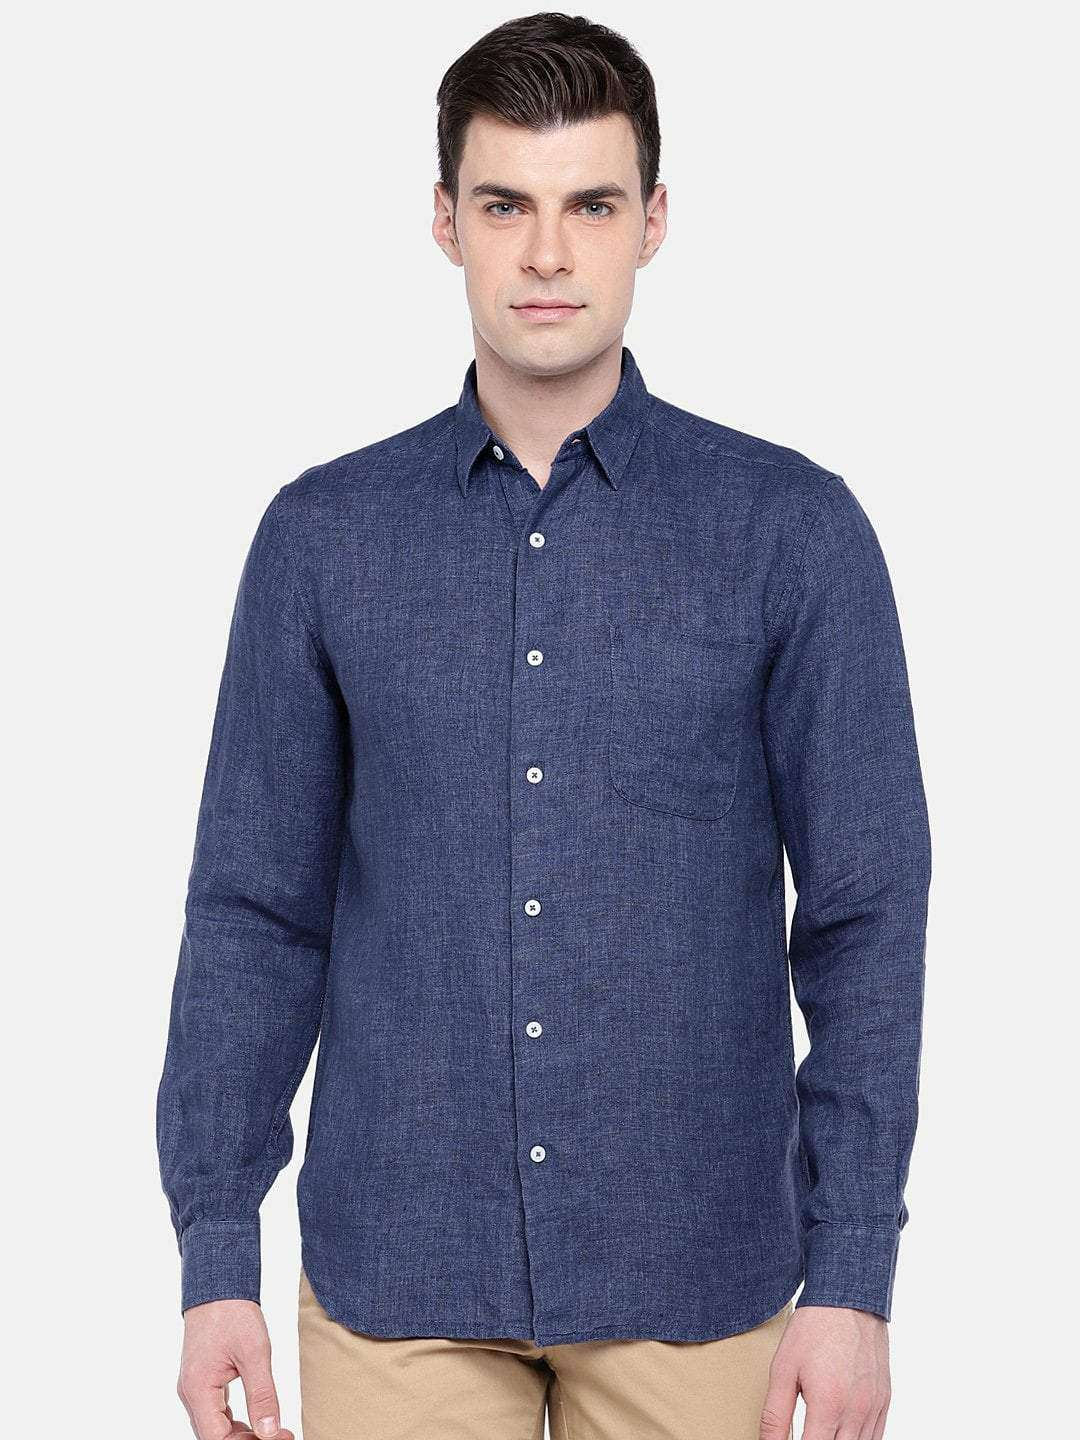 5a2eb55c621 Men's Navy Pure Linen Long Sleeve Regular Fit Shirt